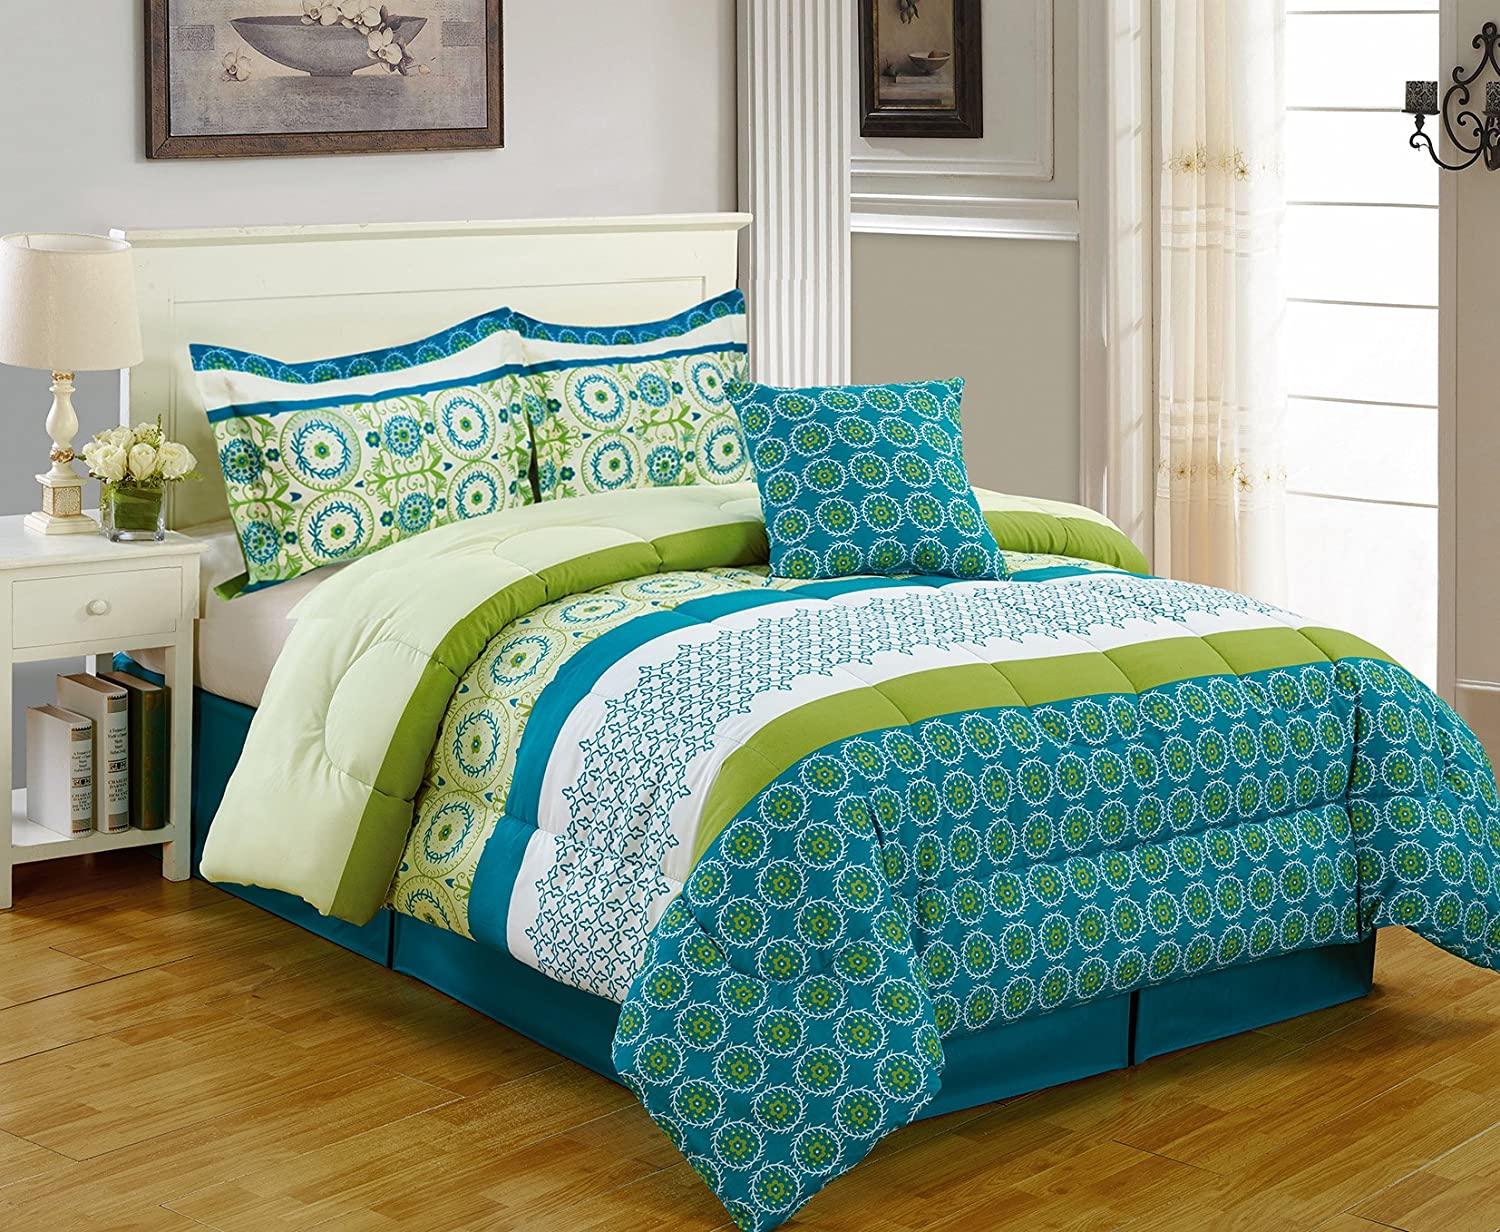 5 piece Multi Color Printed Microfiber Comforter Set Size. Multi Floral Comforters   Ease Bedding with Style